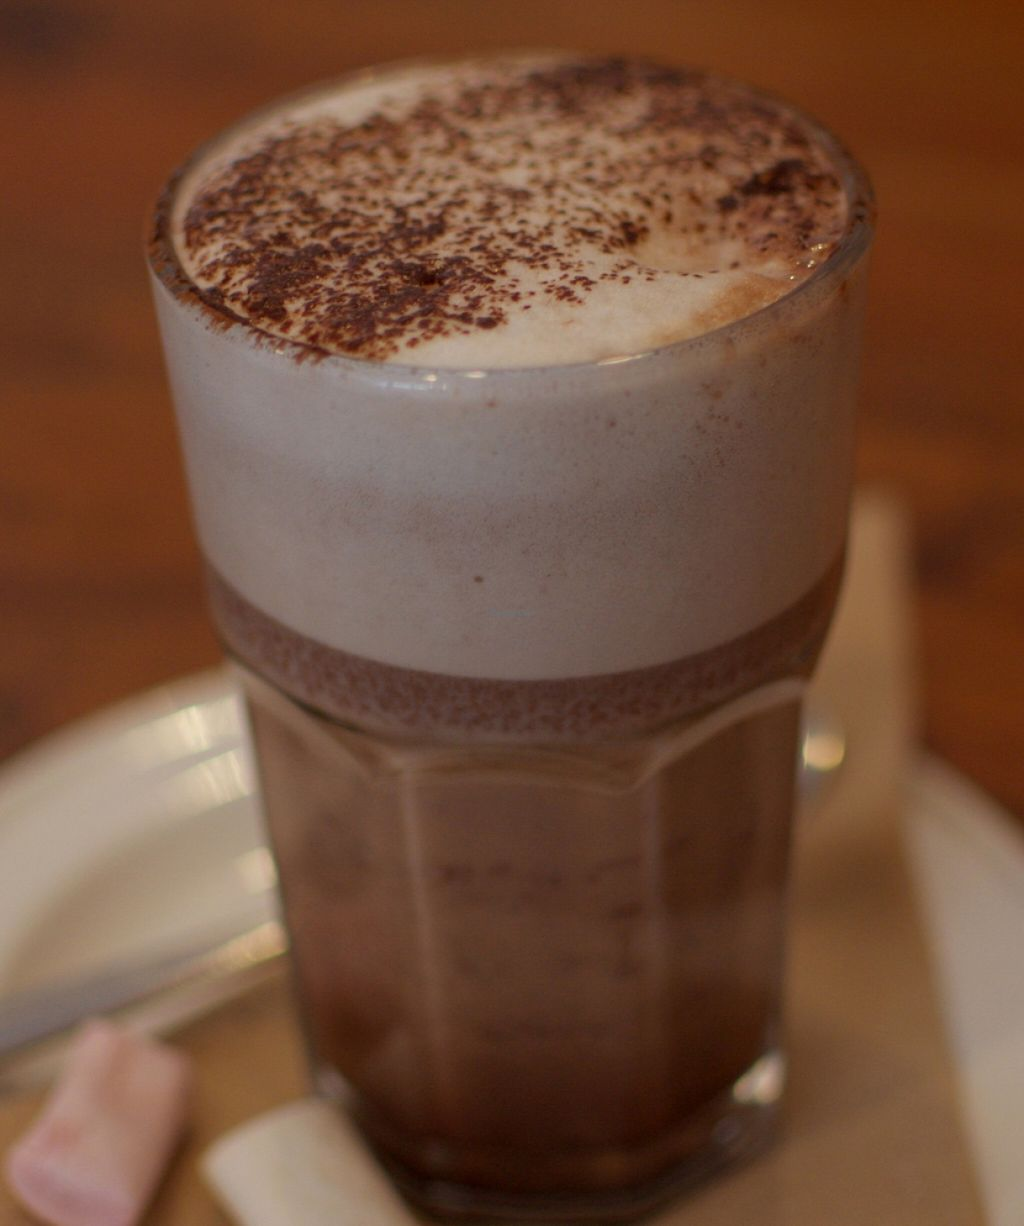 """Photo of Radhey Kitchen and Chai Bar  by <a href=""""/members/profile/chocoholicPhilosophe"""">chocoholicPhilosophe</a> <br/>Hot chocolate (with vegan marshmallows!) <br/> October 9, 2015  - <a href='/contact/abuse/image/48629/256519'>Report</a>"""